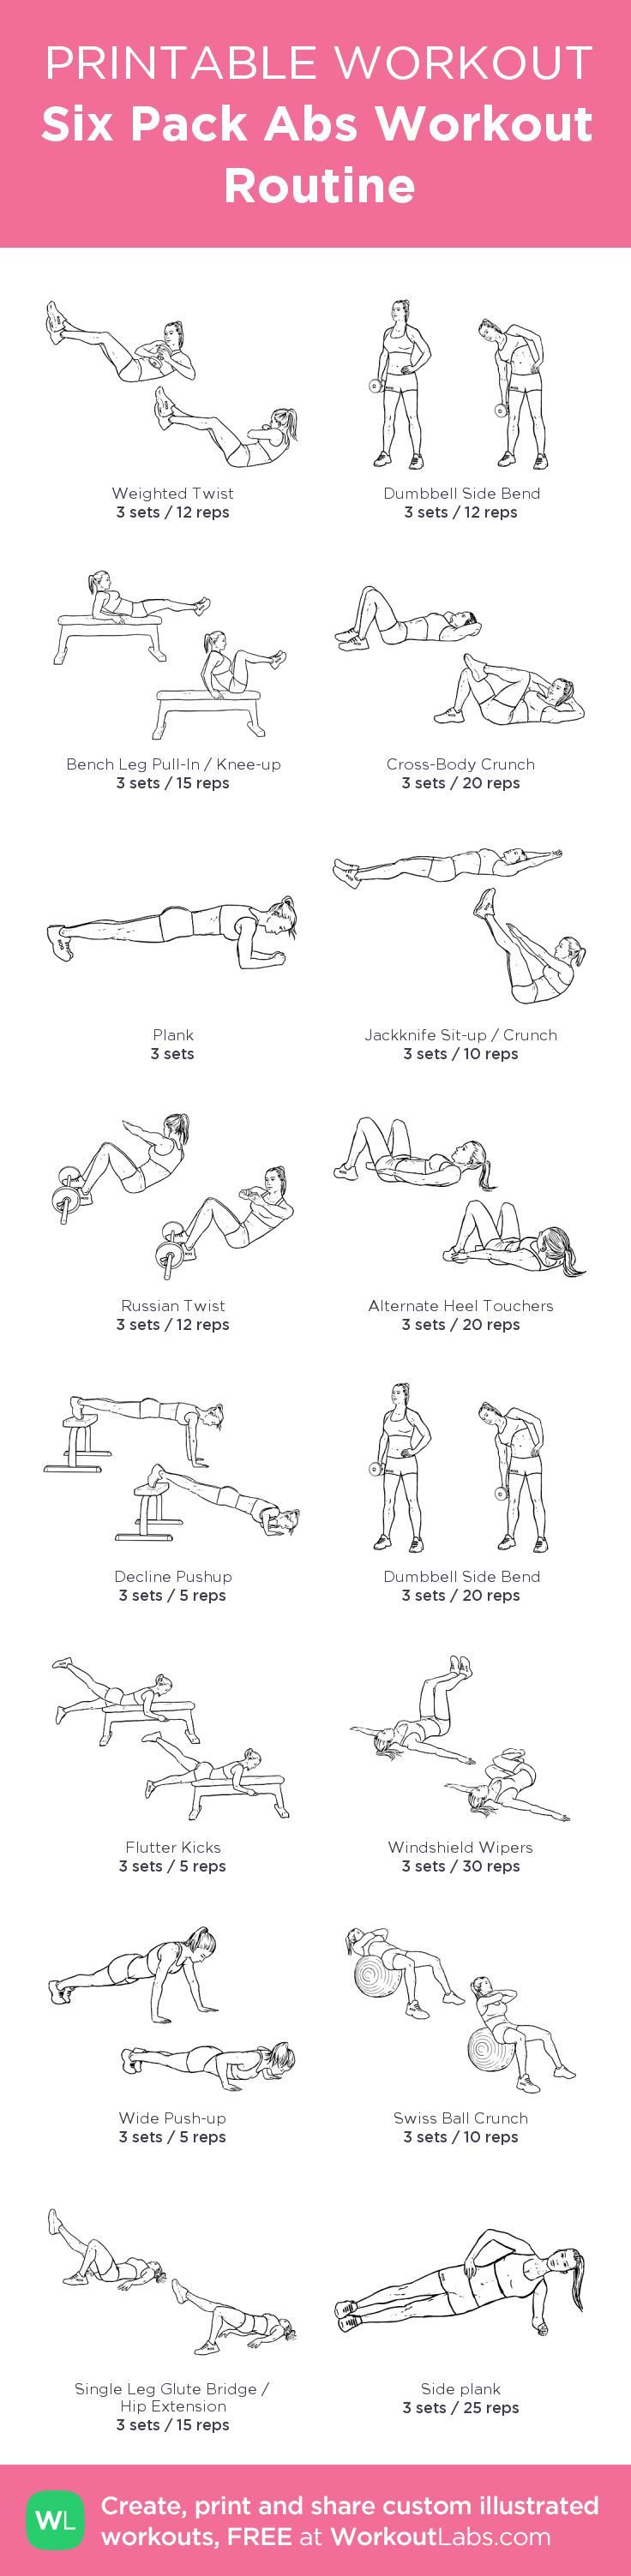 Six Pack Abs Workout Routine: my custom printable workout by @WorkoutLabs #workoutlabs #customworkout: